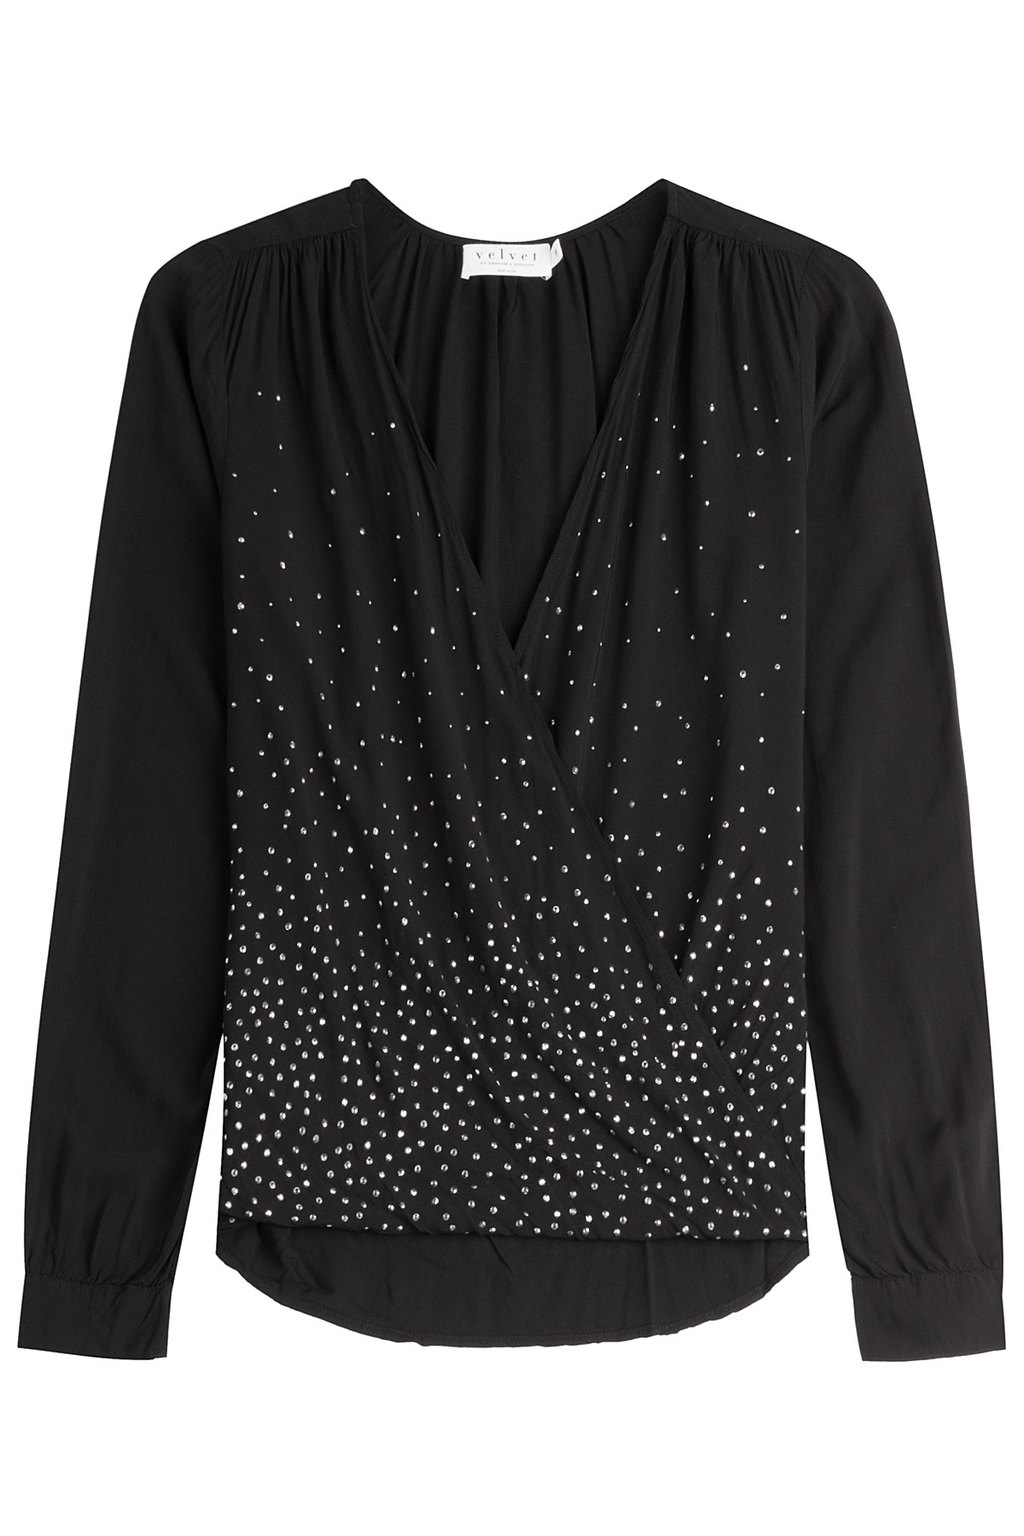 Embellished Blouse - neckline: v-neck; pattern: plain; style: blouse; predominant colour: black; occasions: evening, occasion; length: standard; fit: body skimming; back detail: longer hem at back than at front; sleeve length: long sleeve; sleeve style: standard; pattern type: fabric; texture group: other - light to midweight; embellishment: beading; season: a/w 2015; wardrobe: event